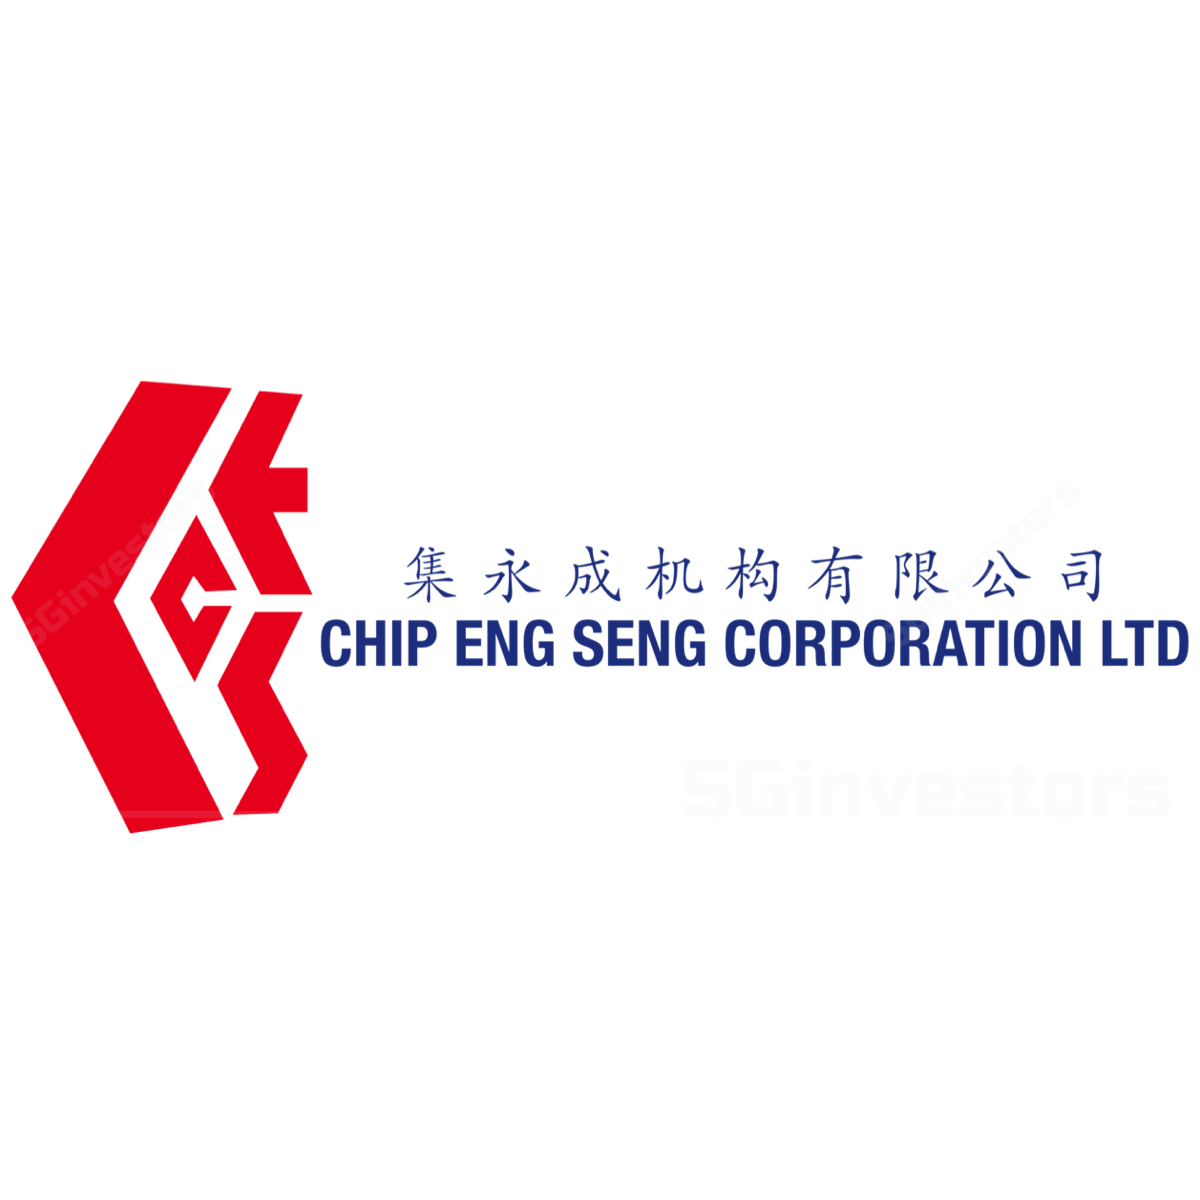 Chip Eng Seng Corporation Ltd - Phillip Securities 2017-11-09: Riding The SG Property Cycle Well